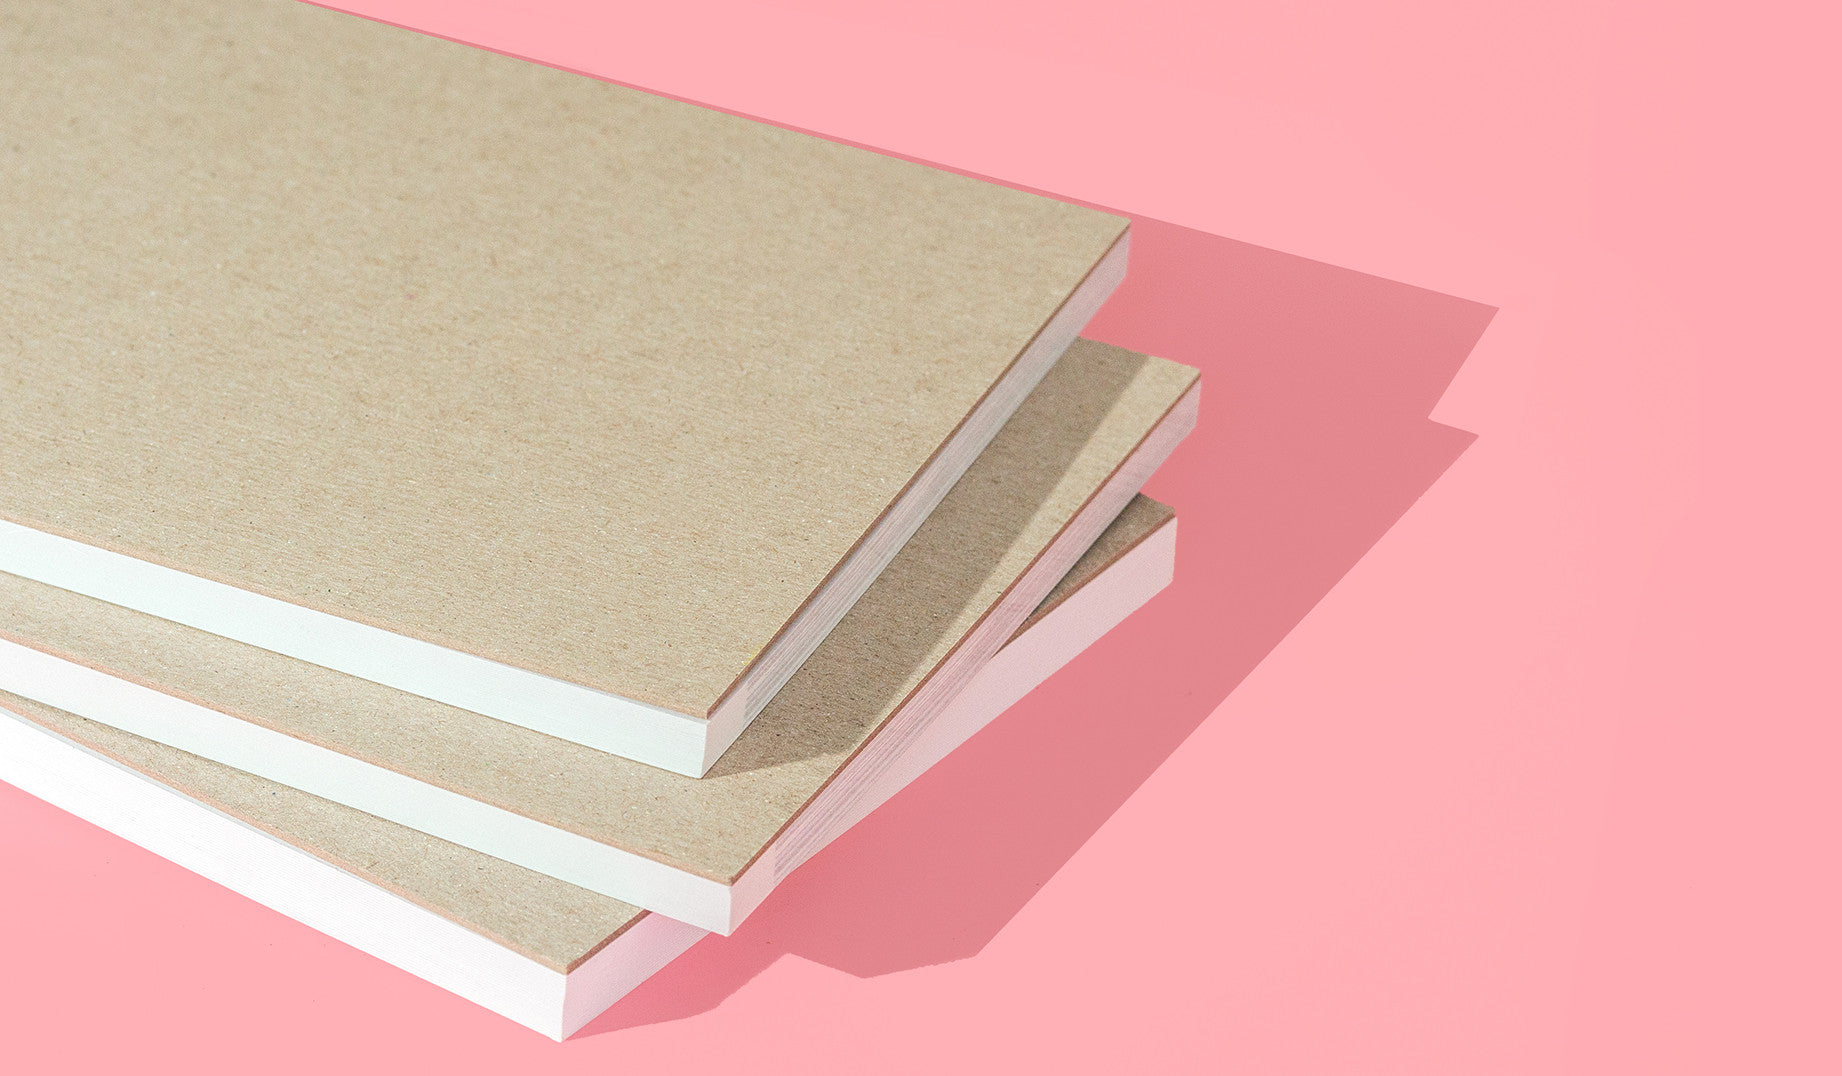 Structure is the secret to our postcard notepads. Sturdy chipboard backing adds weight and shape to these books, enhancing their overall sophisticated look.